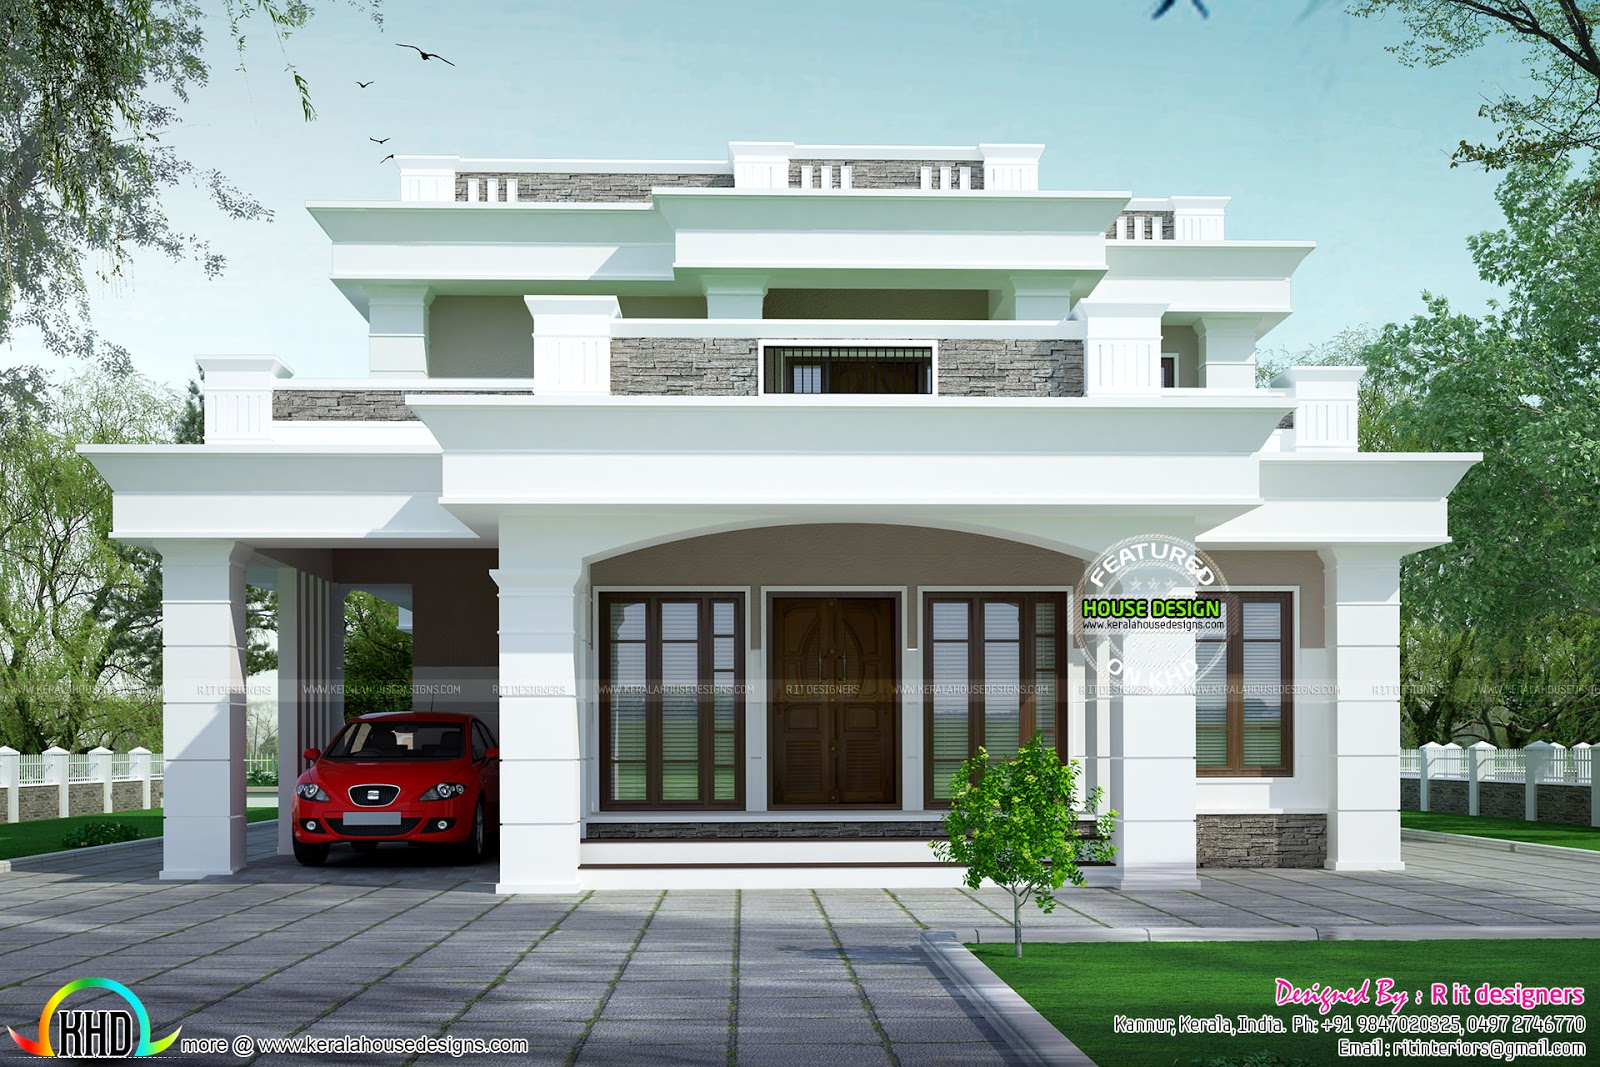 2813 sq-ft flat roof, box type home - Homes Design Plans